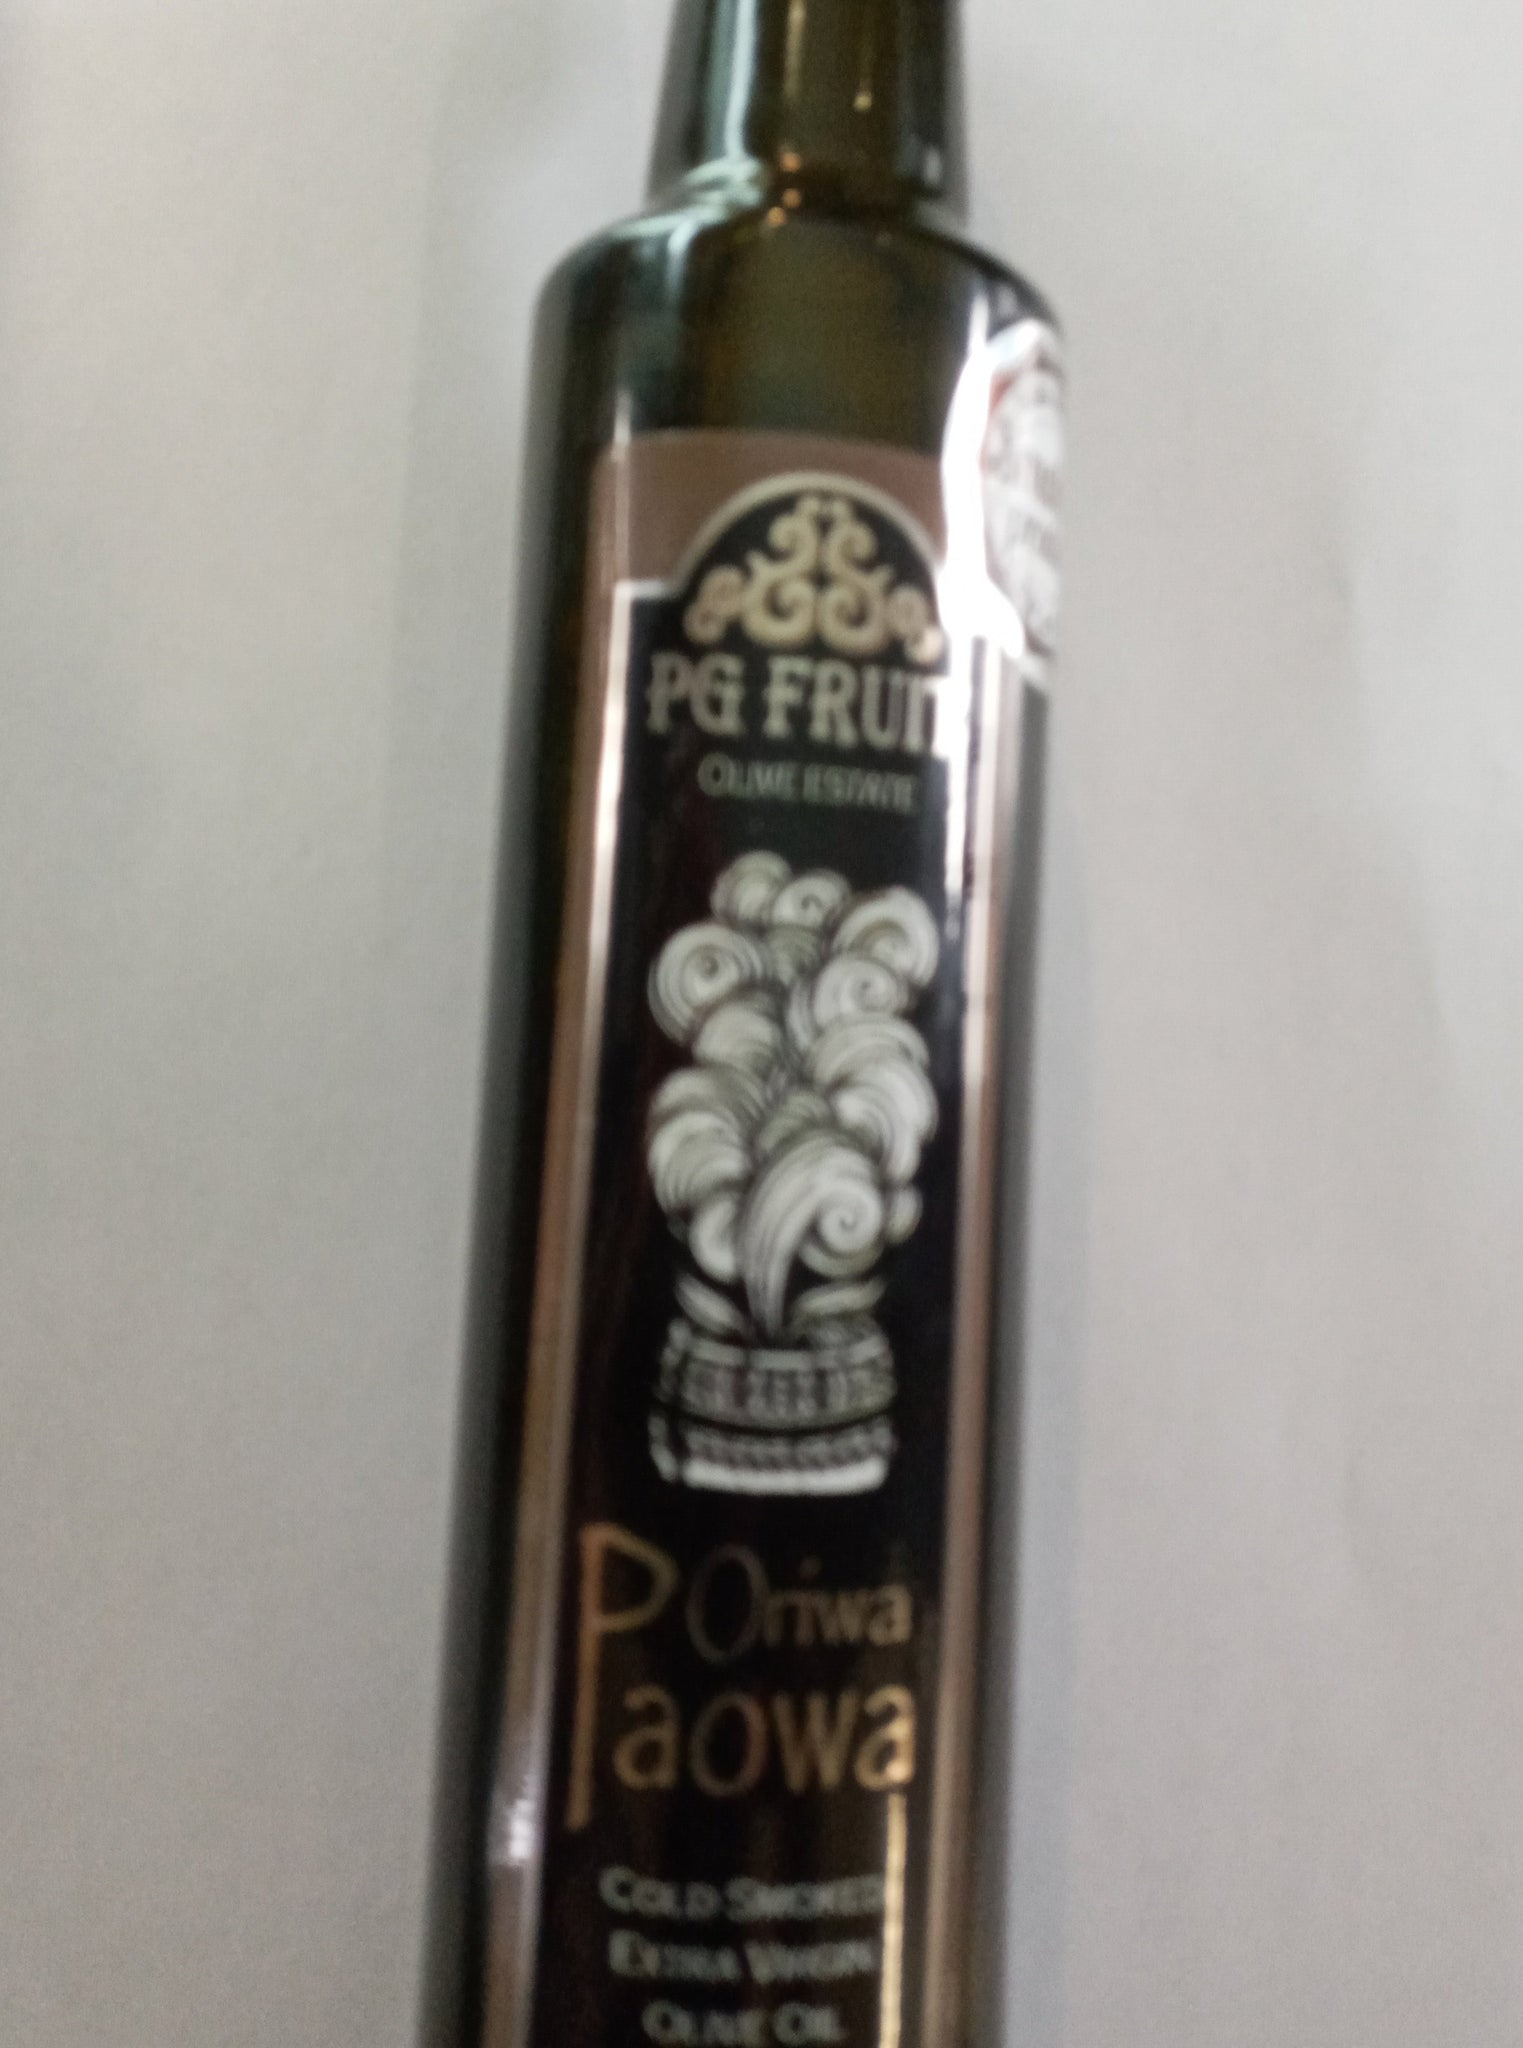 PG Fruit Oriwa Paowa Extra Virgin Olive Oil 250ml